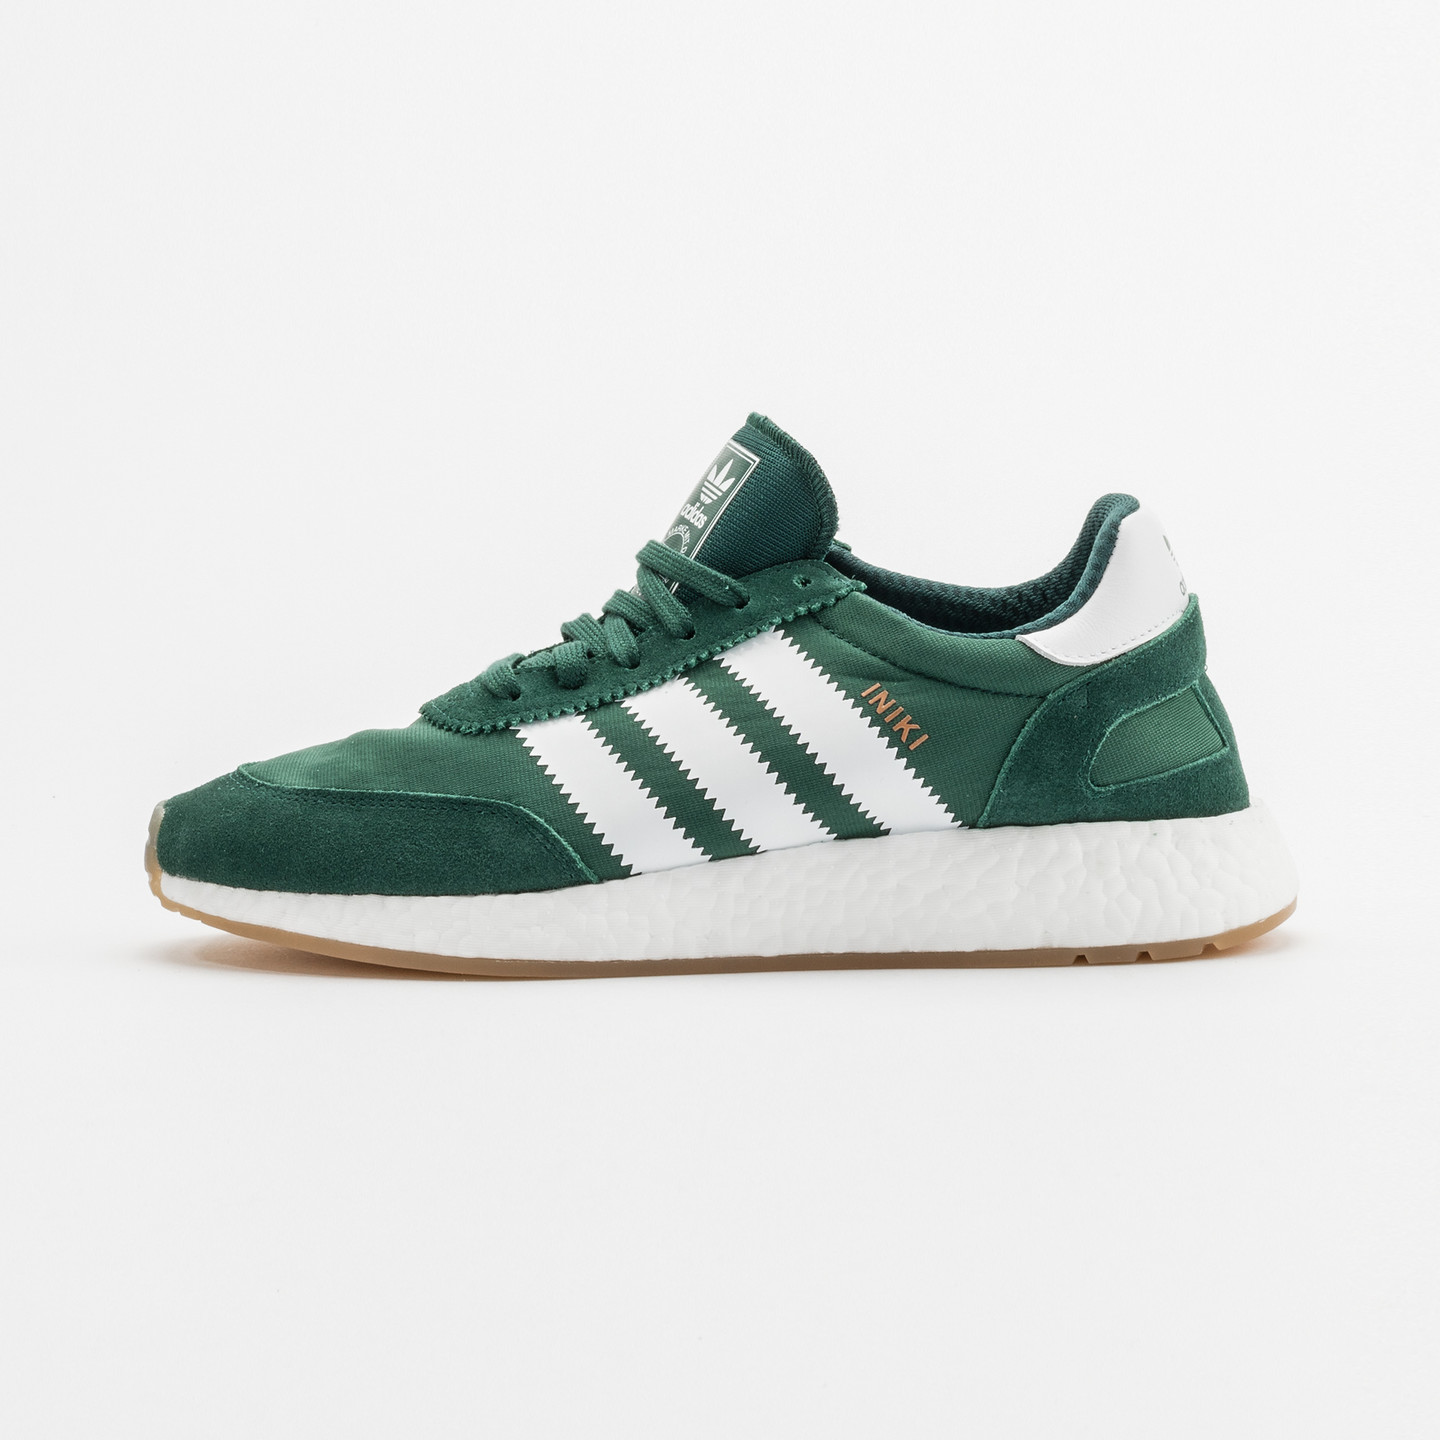 Adidas Iniki Runner Collegiate Green / White BY9726-46.66